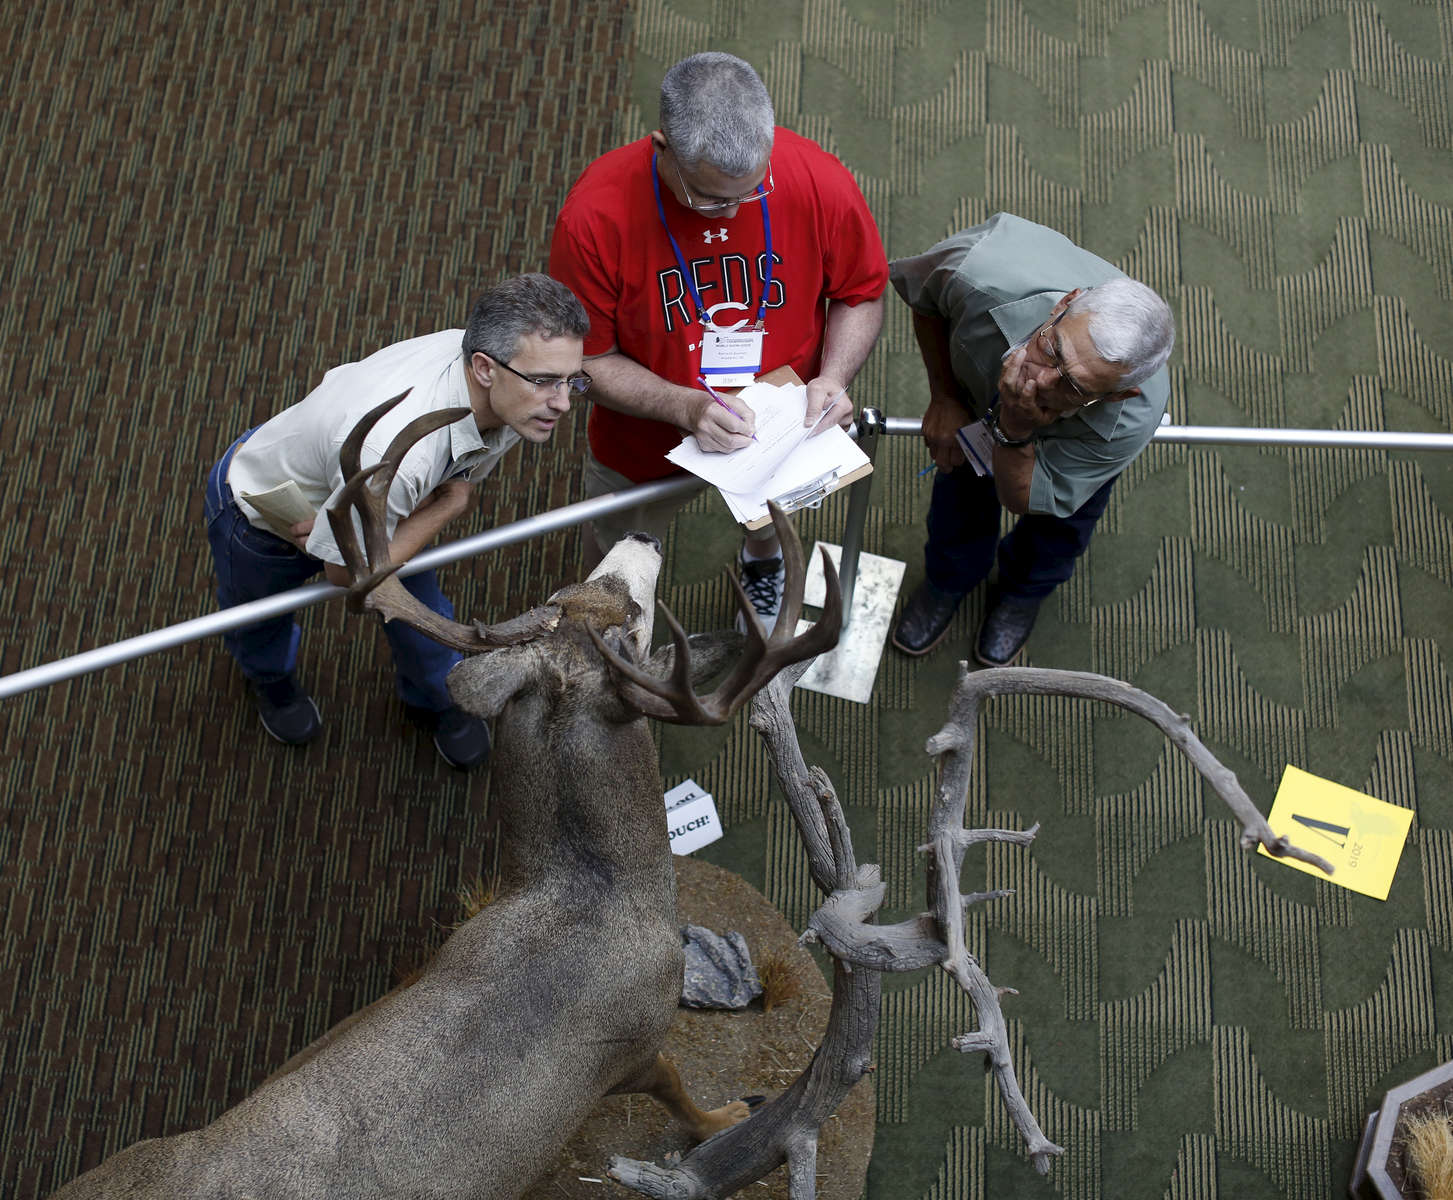 (l-r) Judges Marcus Zimmerman, Kenneth Bauman, and Danny Owens, look at a deer entry trying to decide which one will be named best in the World during the World Taxidermy & Fish Carving Championships, in Springfield, Missouri on May 3, 2019.